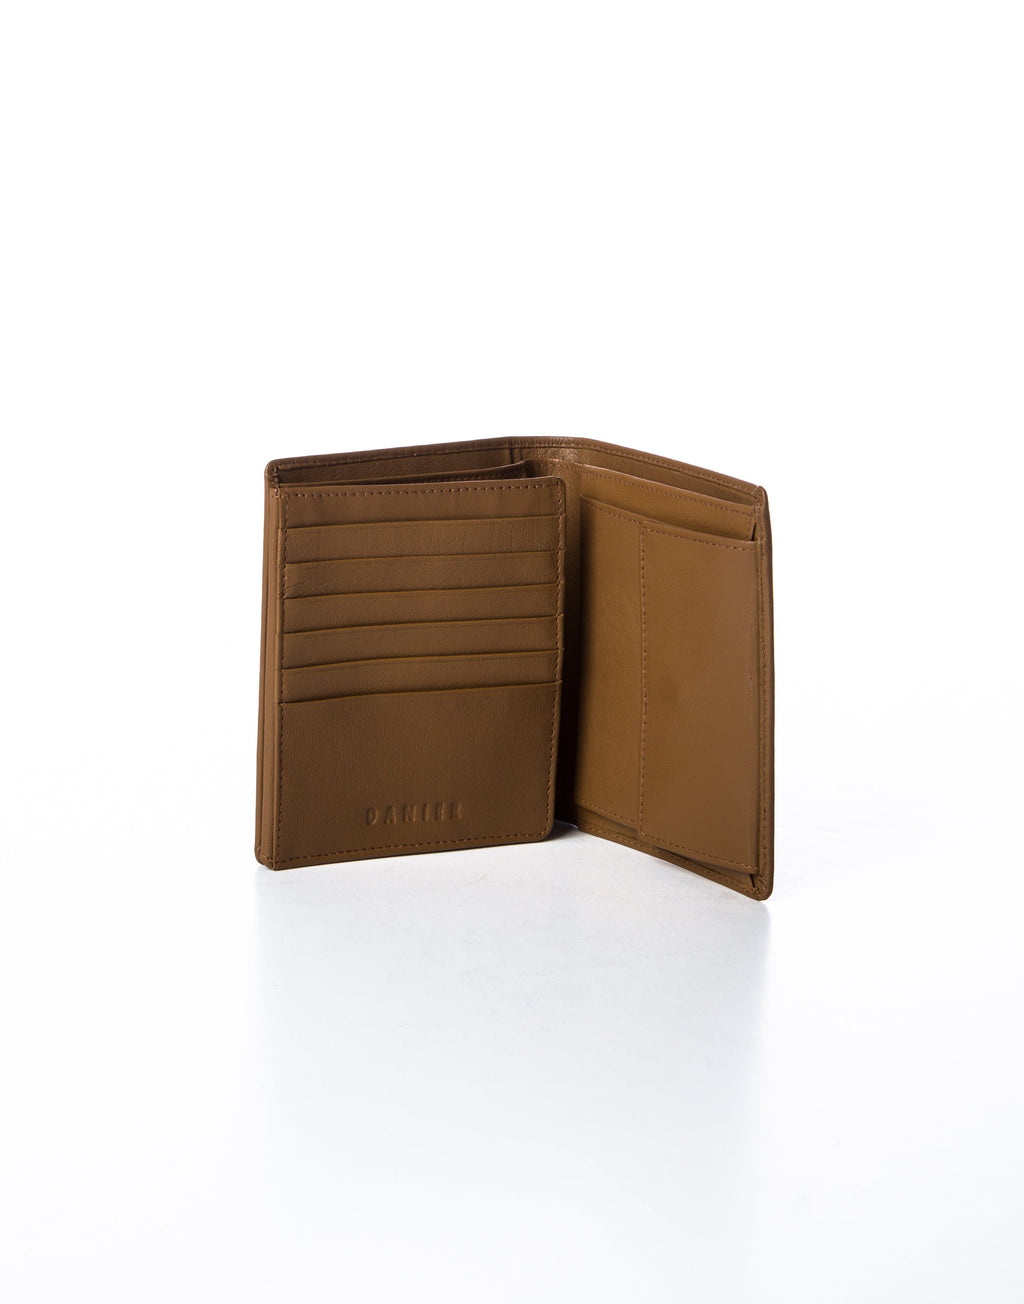 COLOMBO - Leather Tri-Fold Wallet - Cognac